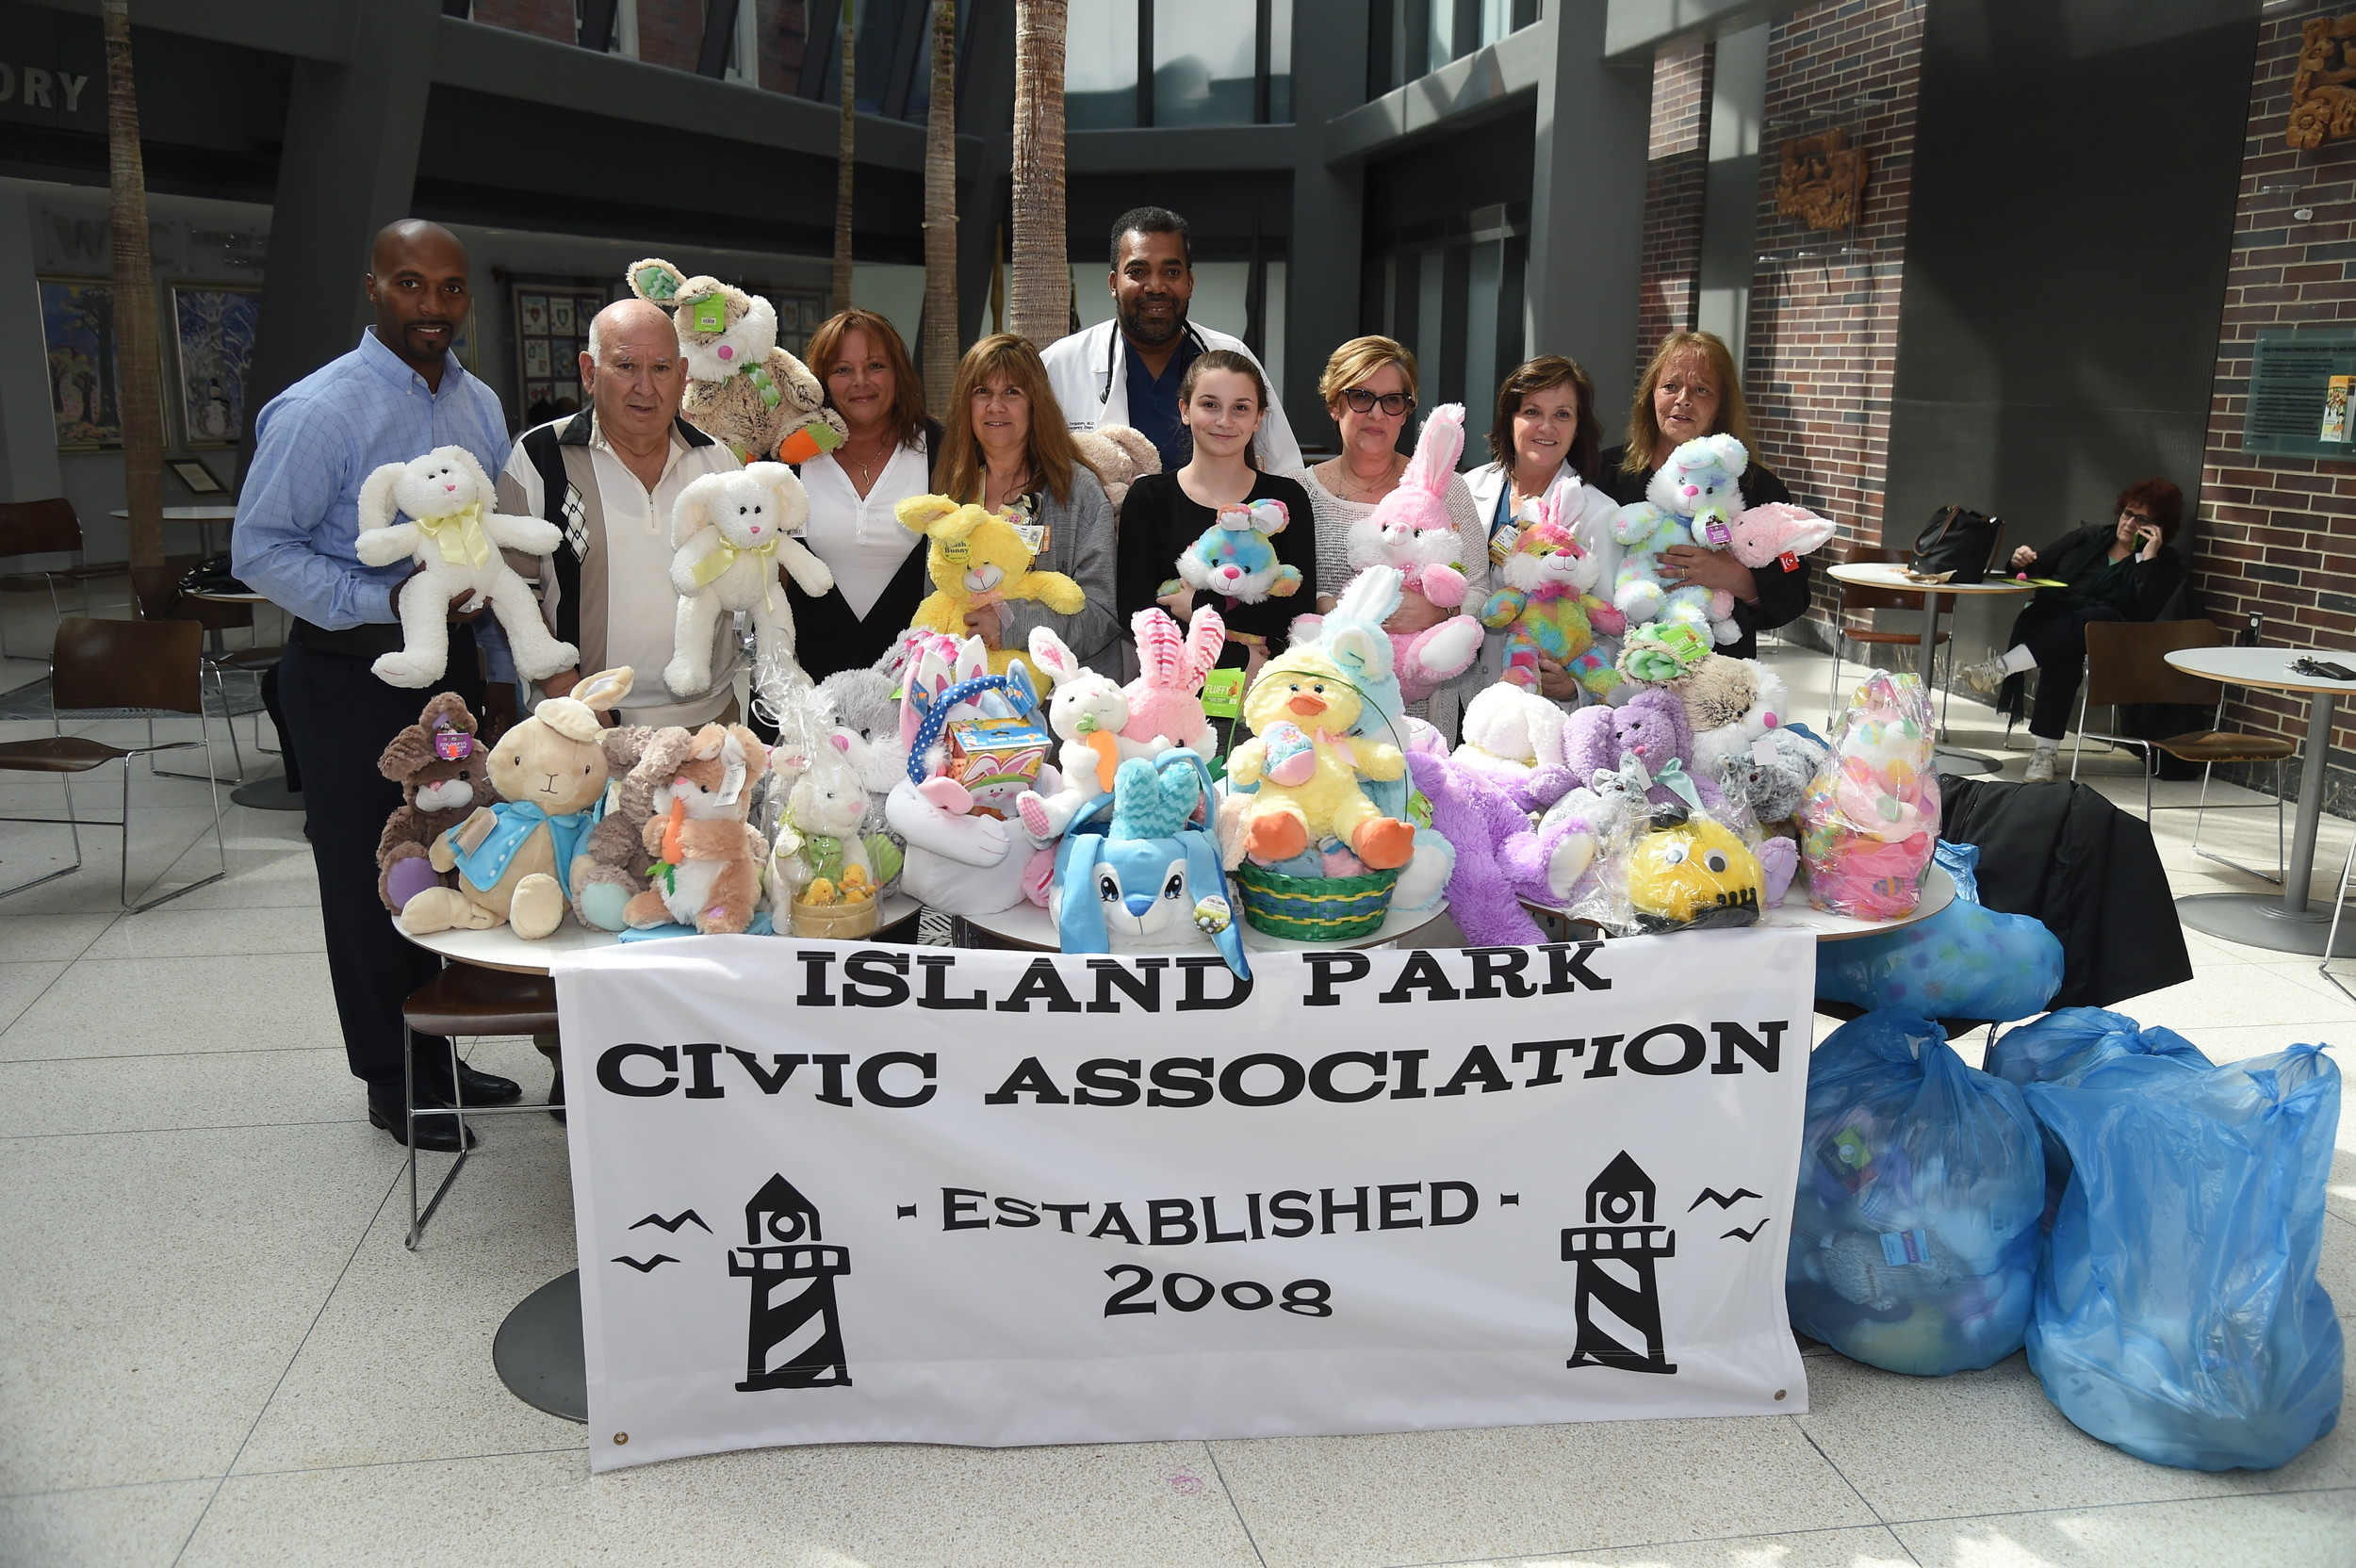 Steve Richardson, left; Nick DeMatteo; Dominica Califano; Lynn Bert, South Nassau Communities Hospital's nurse manager for pediatrics; Dr. Lincoln Ferguson, associate chairman of pediatrics; Pia Califano; Kerri Wagner, child and family life specialist; nurse Cecilia Carey; and Anna D'Amaro, former Island Park Civic Association president at the hospital on April 12.